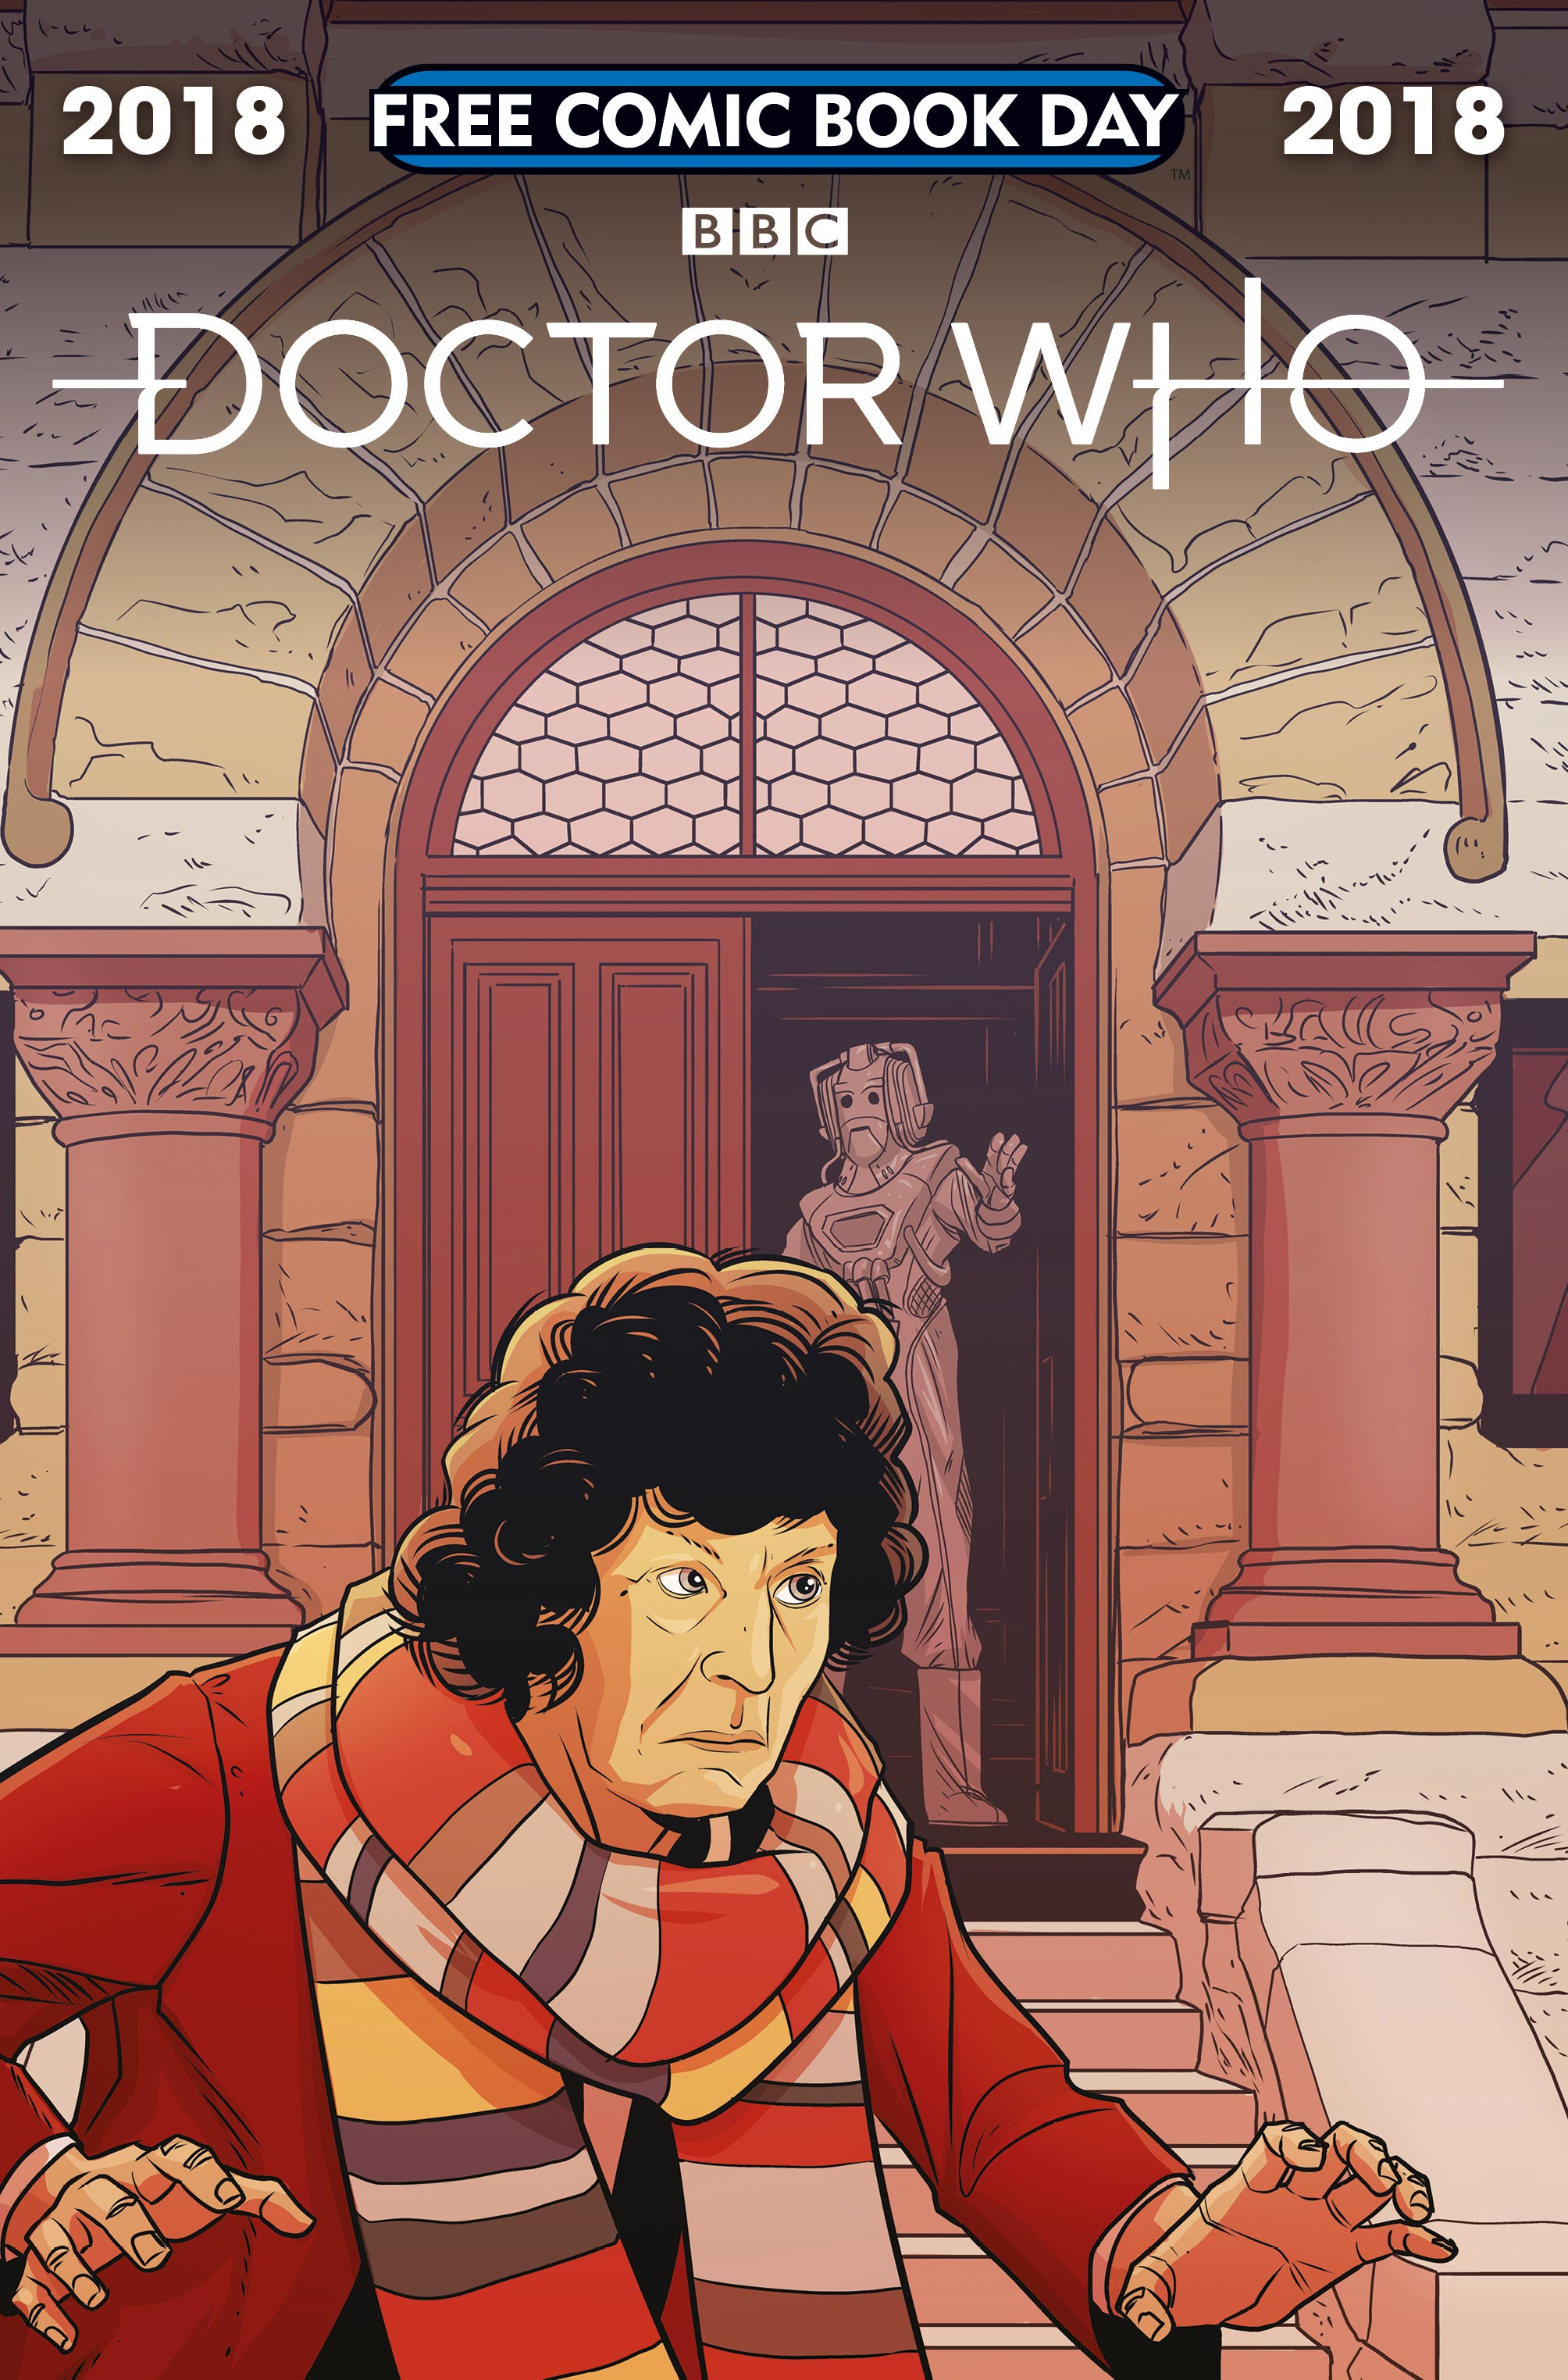 Doctor_Who_Free_Comic_Book_Day_2018_Cover